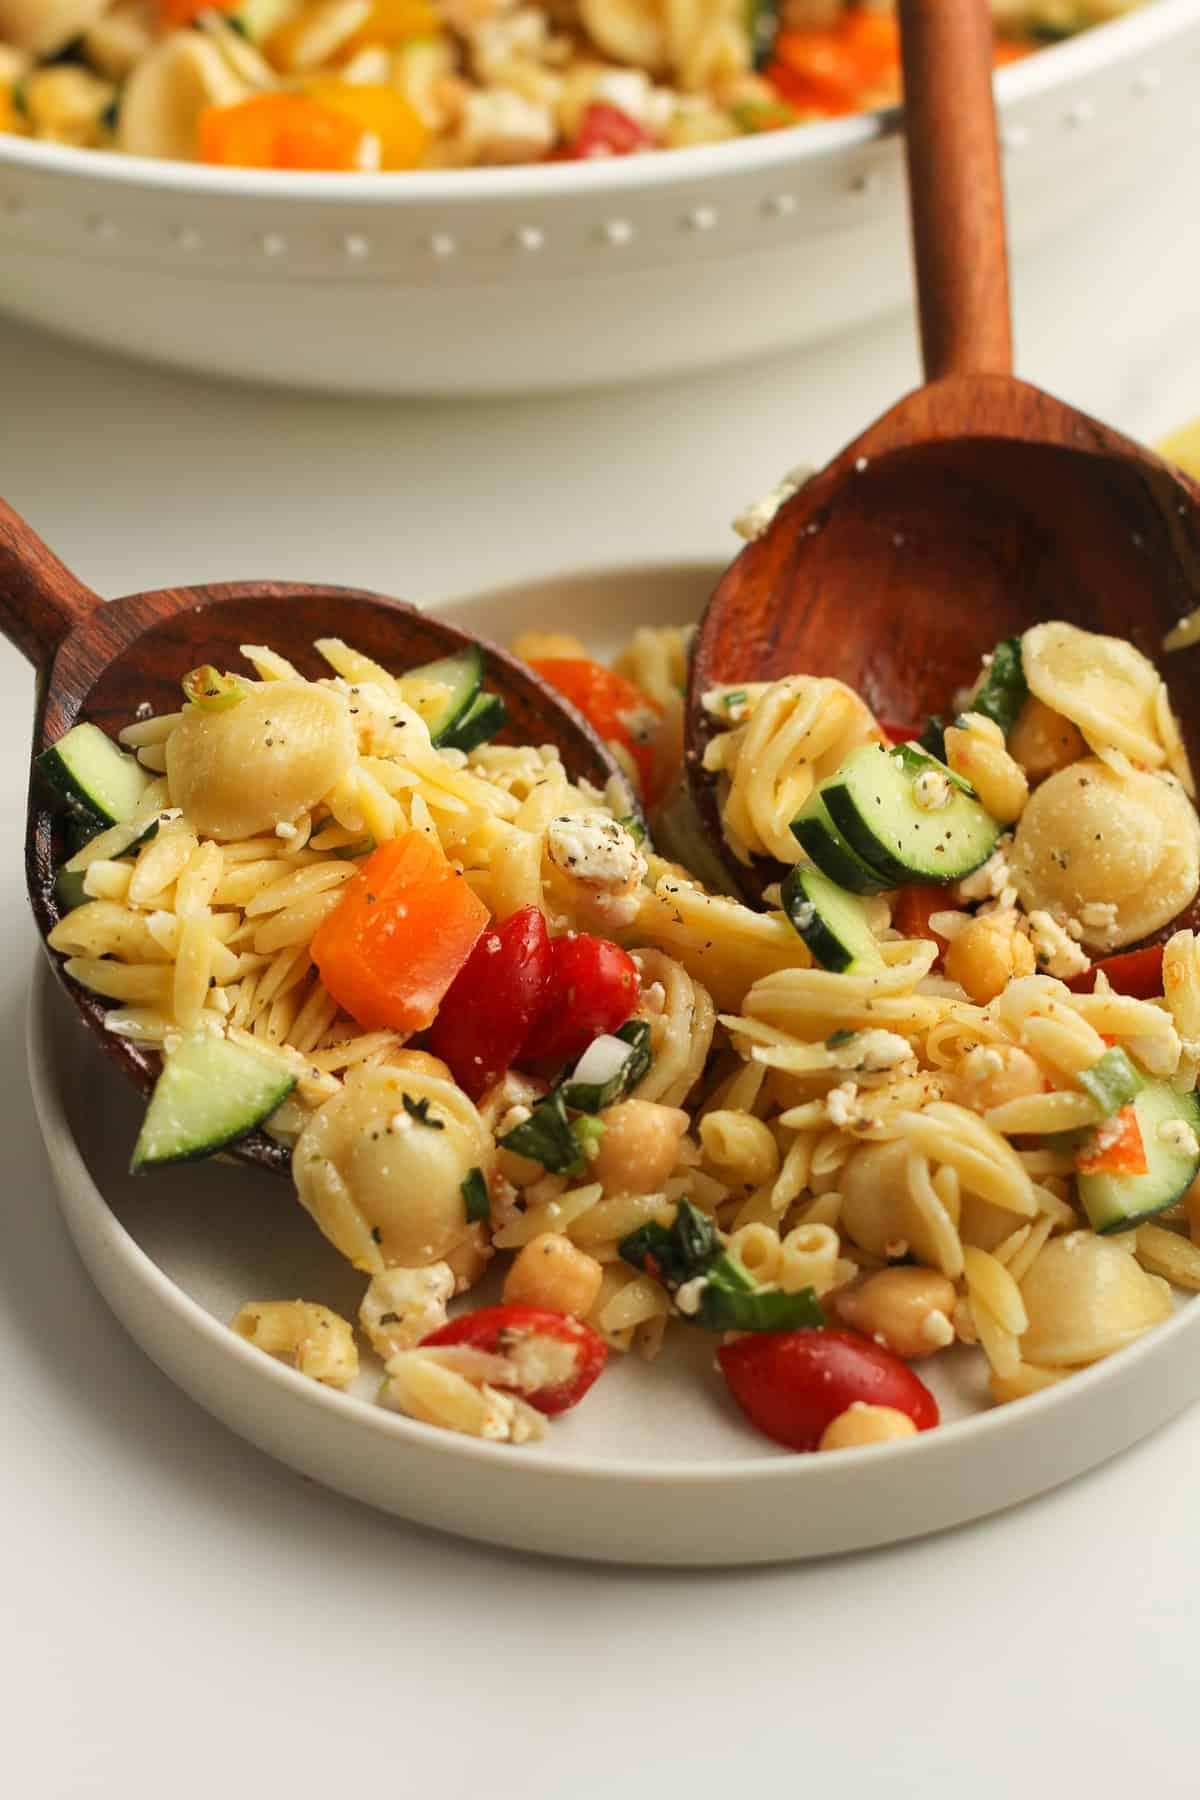 Side shot of a plate of pasta salad being served.